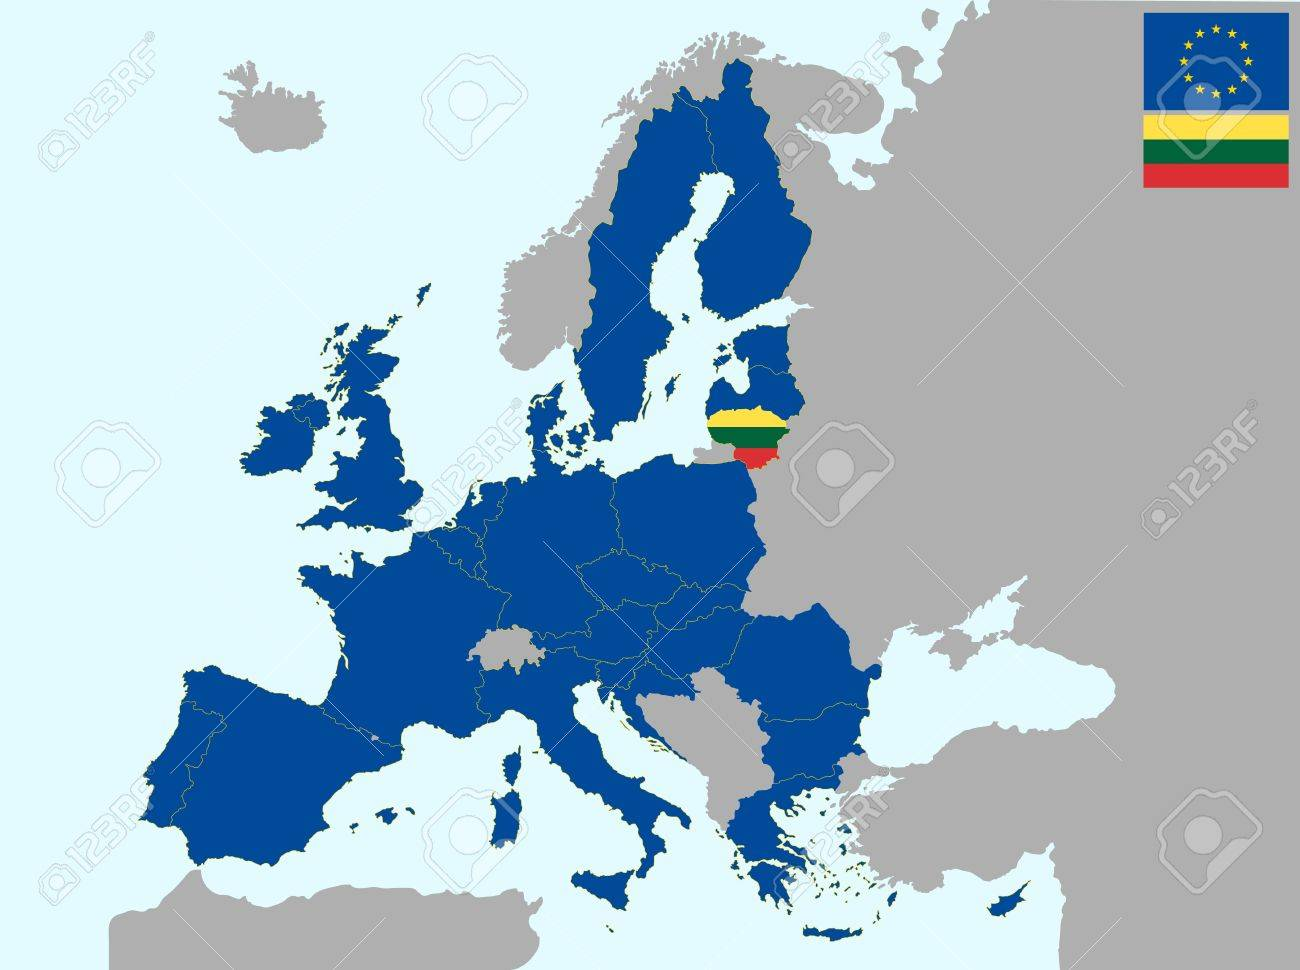 Lithuania On Europe Map.Illustration Of Europe Map With Flag Of Lithuania From 1 July